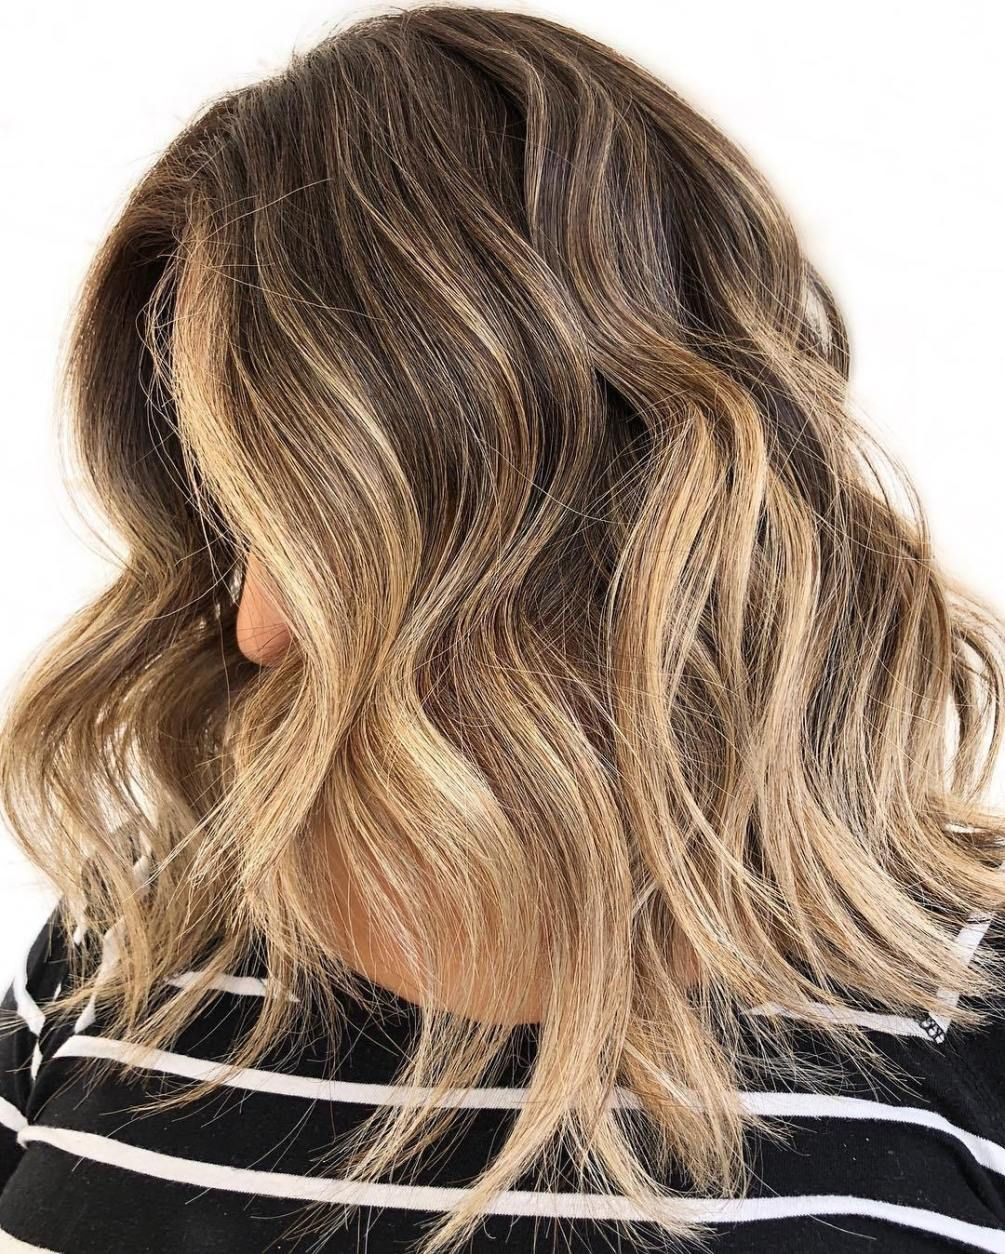 20 Best Hair Colors To Look Younger Instantly Warm Balayage Cool Hairstyles Cool Hair Color